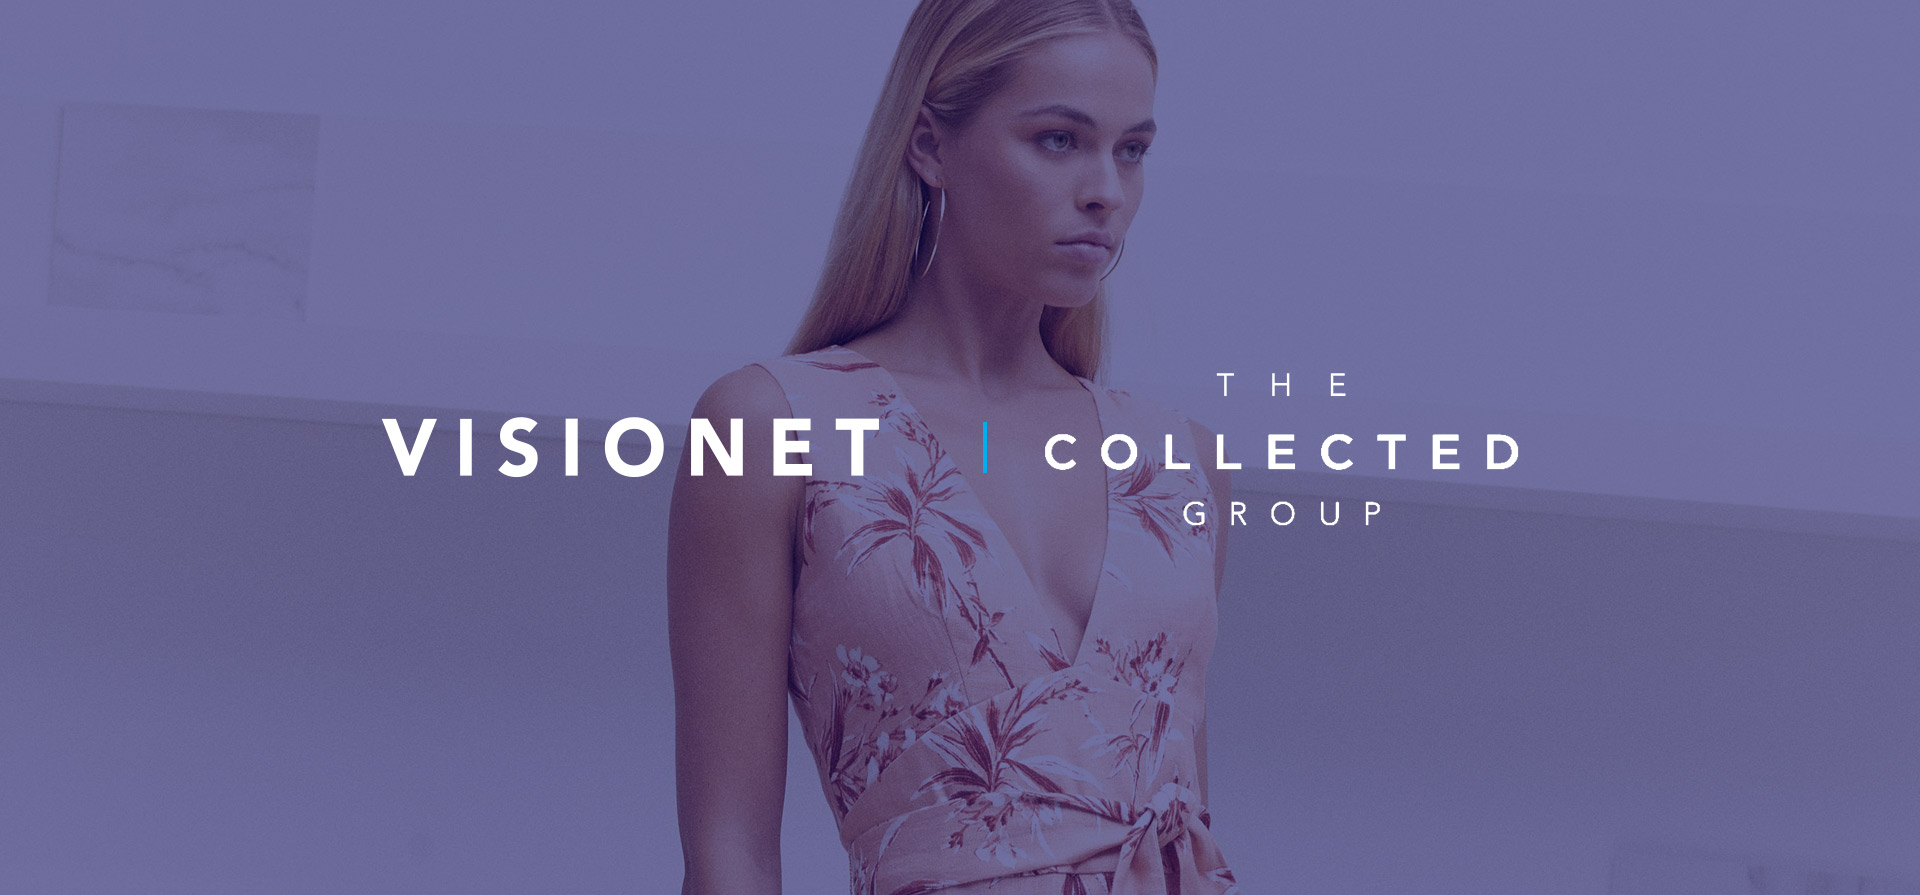 Visionet Systems, Inc. equips Dutch LLC, a leading diverse fashion firm, with its Microsoft Dynamics AX integrated transformation